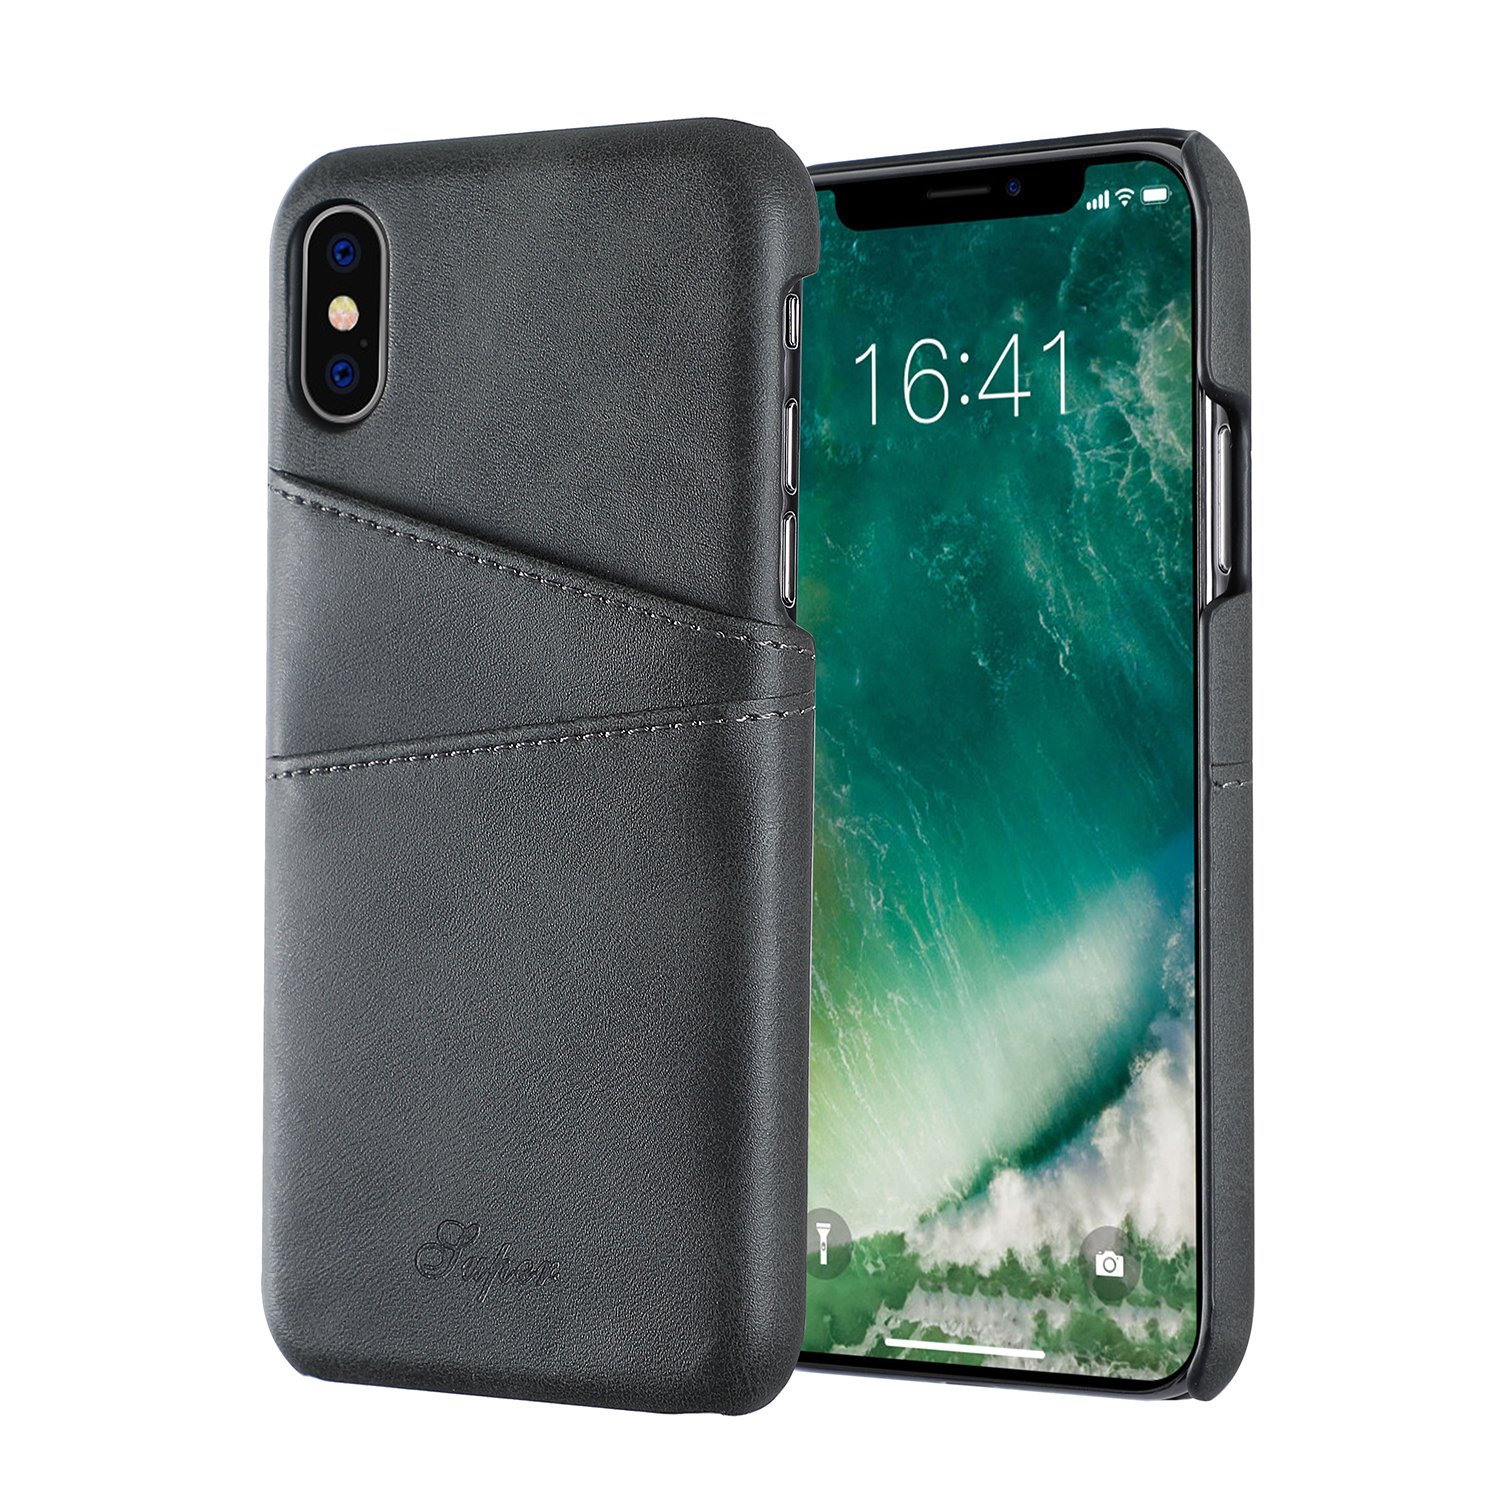 iPhone X Case,iPhone 10 Case Slim Fit Soft PU Protective Leather iPhone X Card Slots Case Cover Shock Absorbing Case Card Holder ID Slot Supports Wireless Charging Fit for Apple iPhone X/10-Black